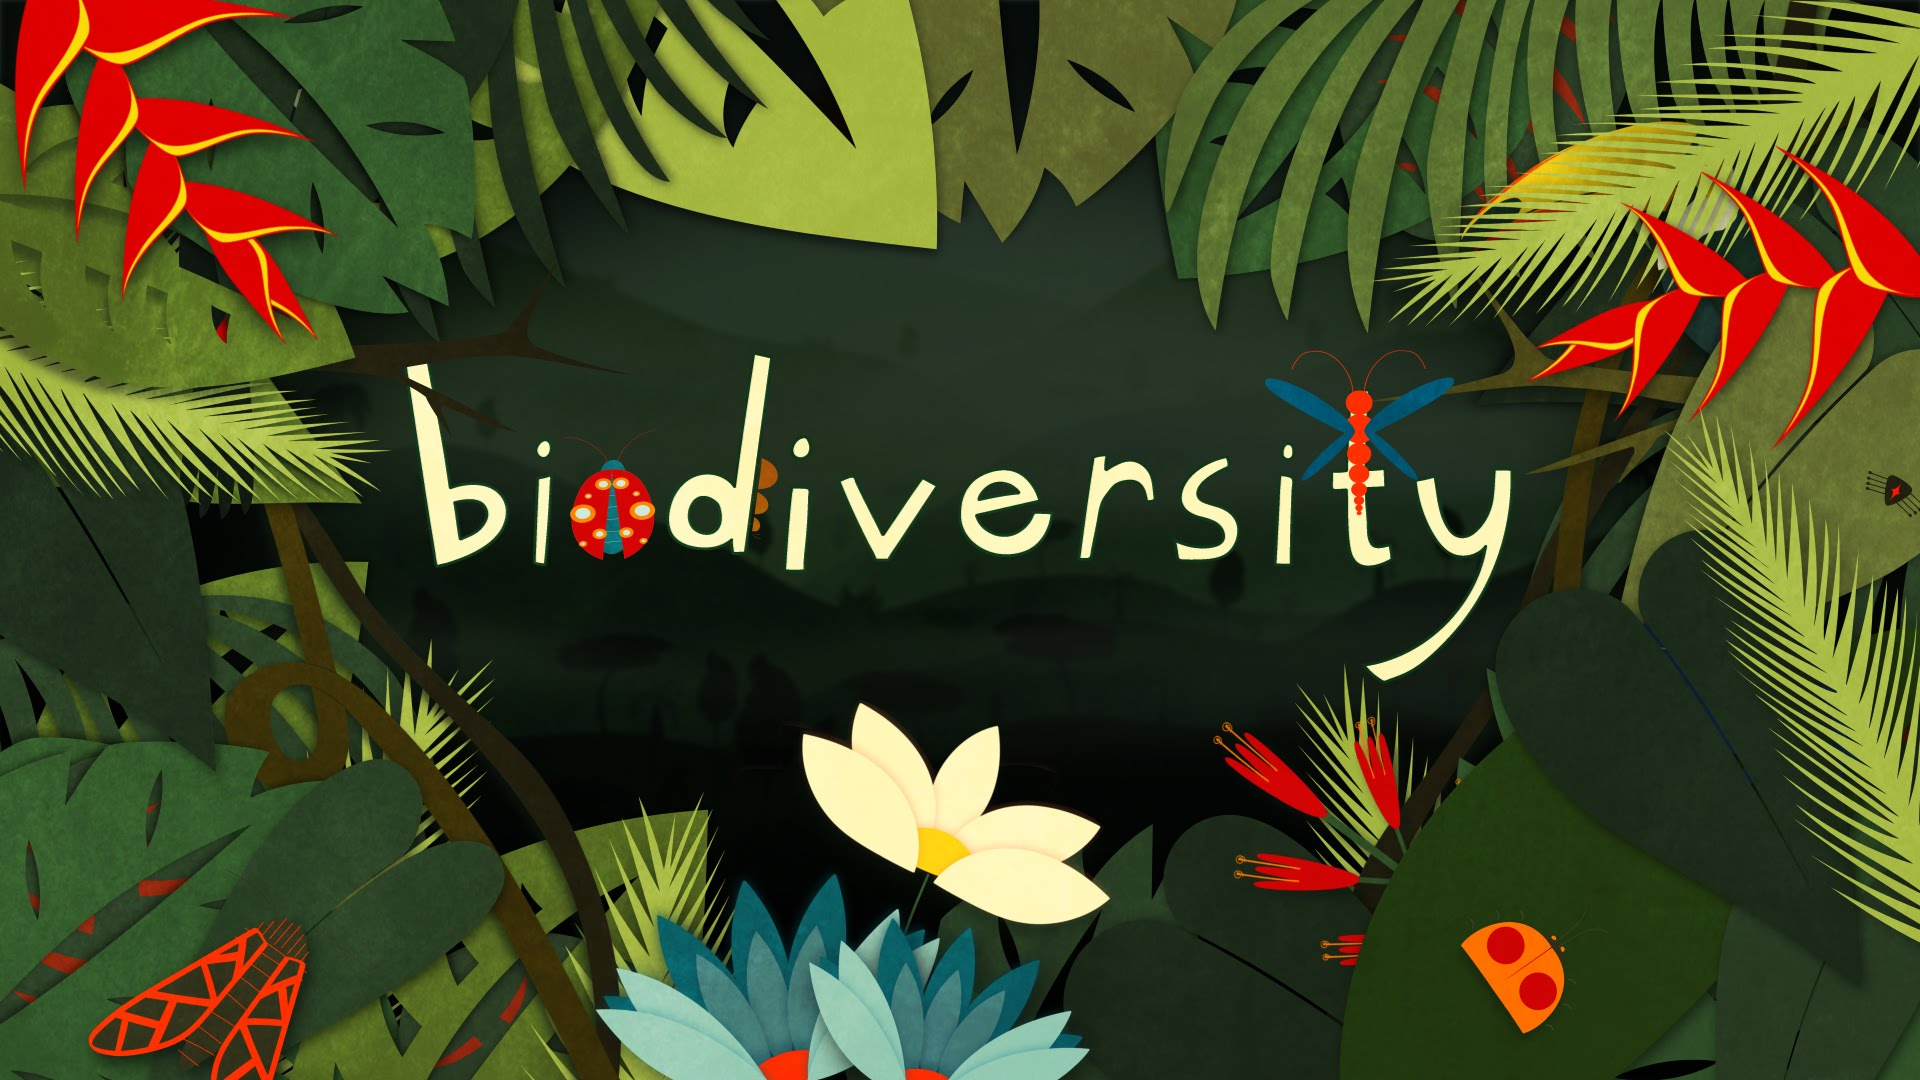 essay biodiversity conservation Unique essay on biodiversity conservation for students and kids given herelong essay, short essay, gujarati, marathi, telugu, kannada, punjabi, tamil, malayalam, assamese, bengali.